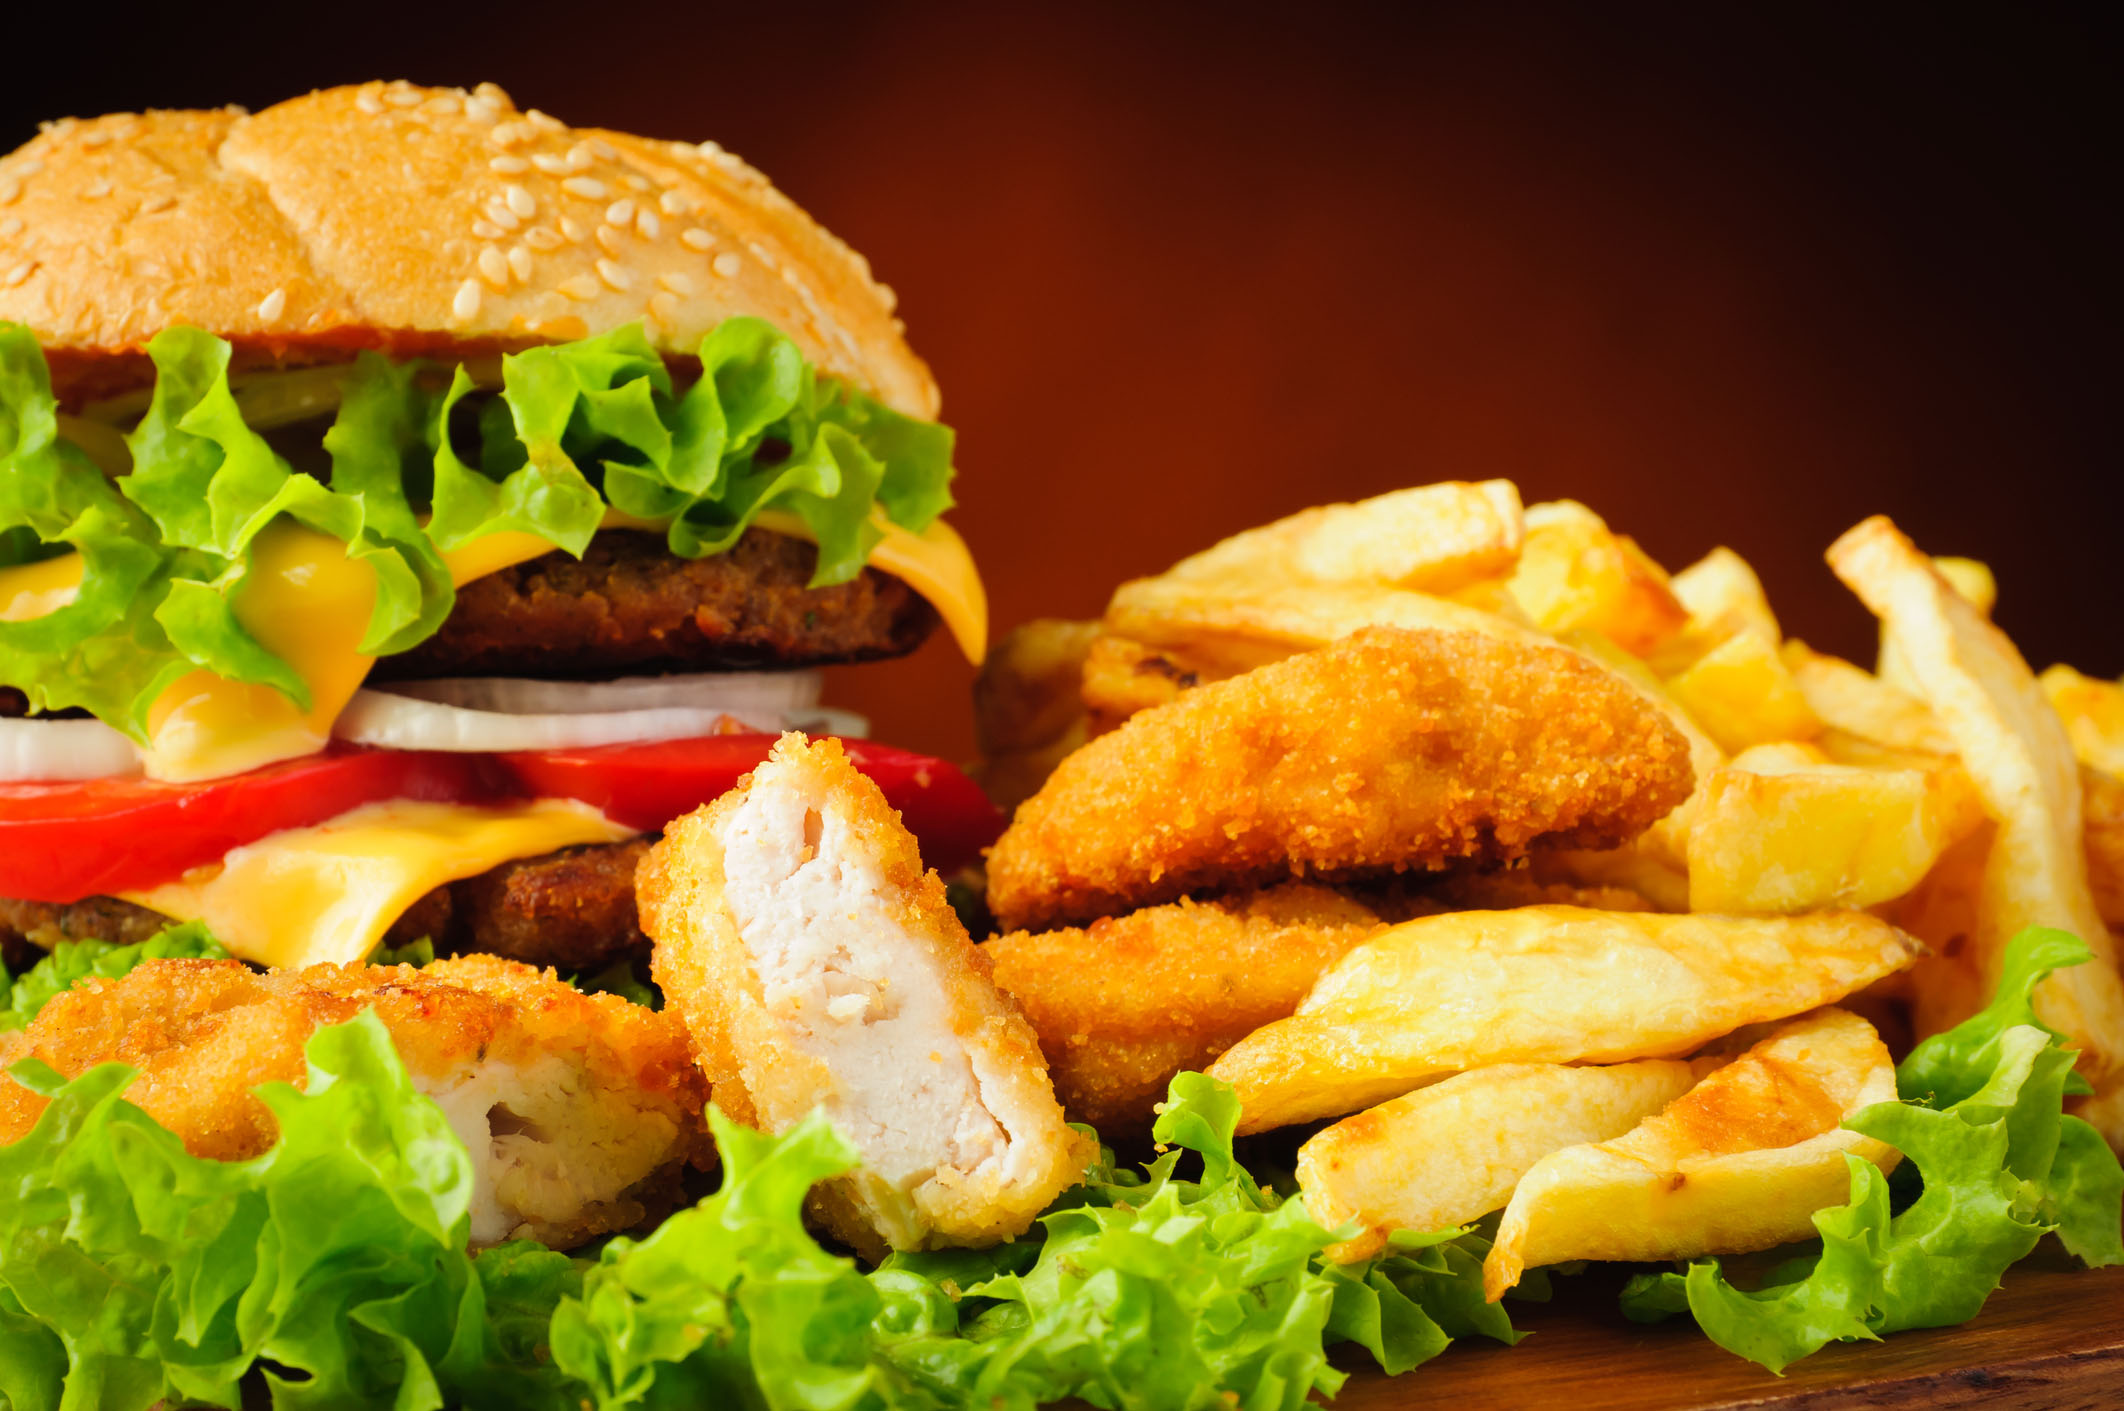 Do-Fast-Food-Companies-Have-to-Take-Responsibility-for-the-Obesity-Epidemic